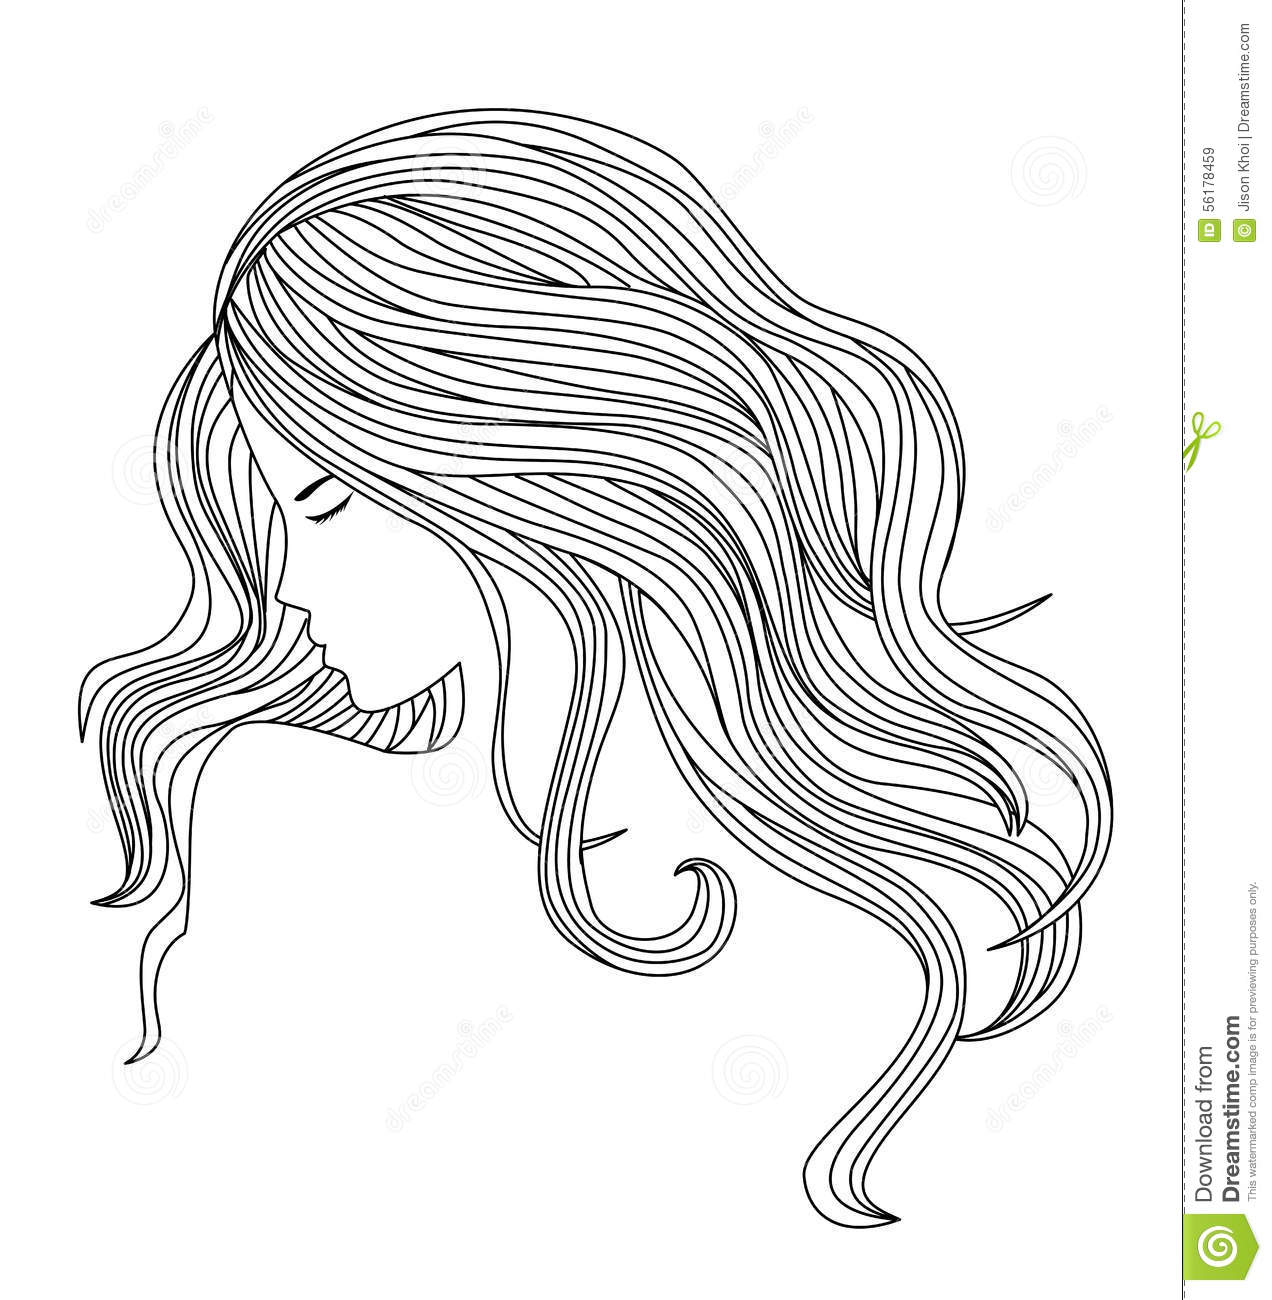 Healthy Hair Illustration Stock Vector Illustration Of